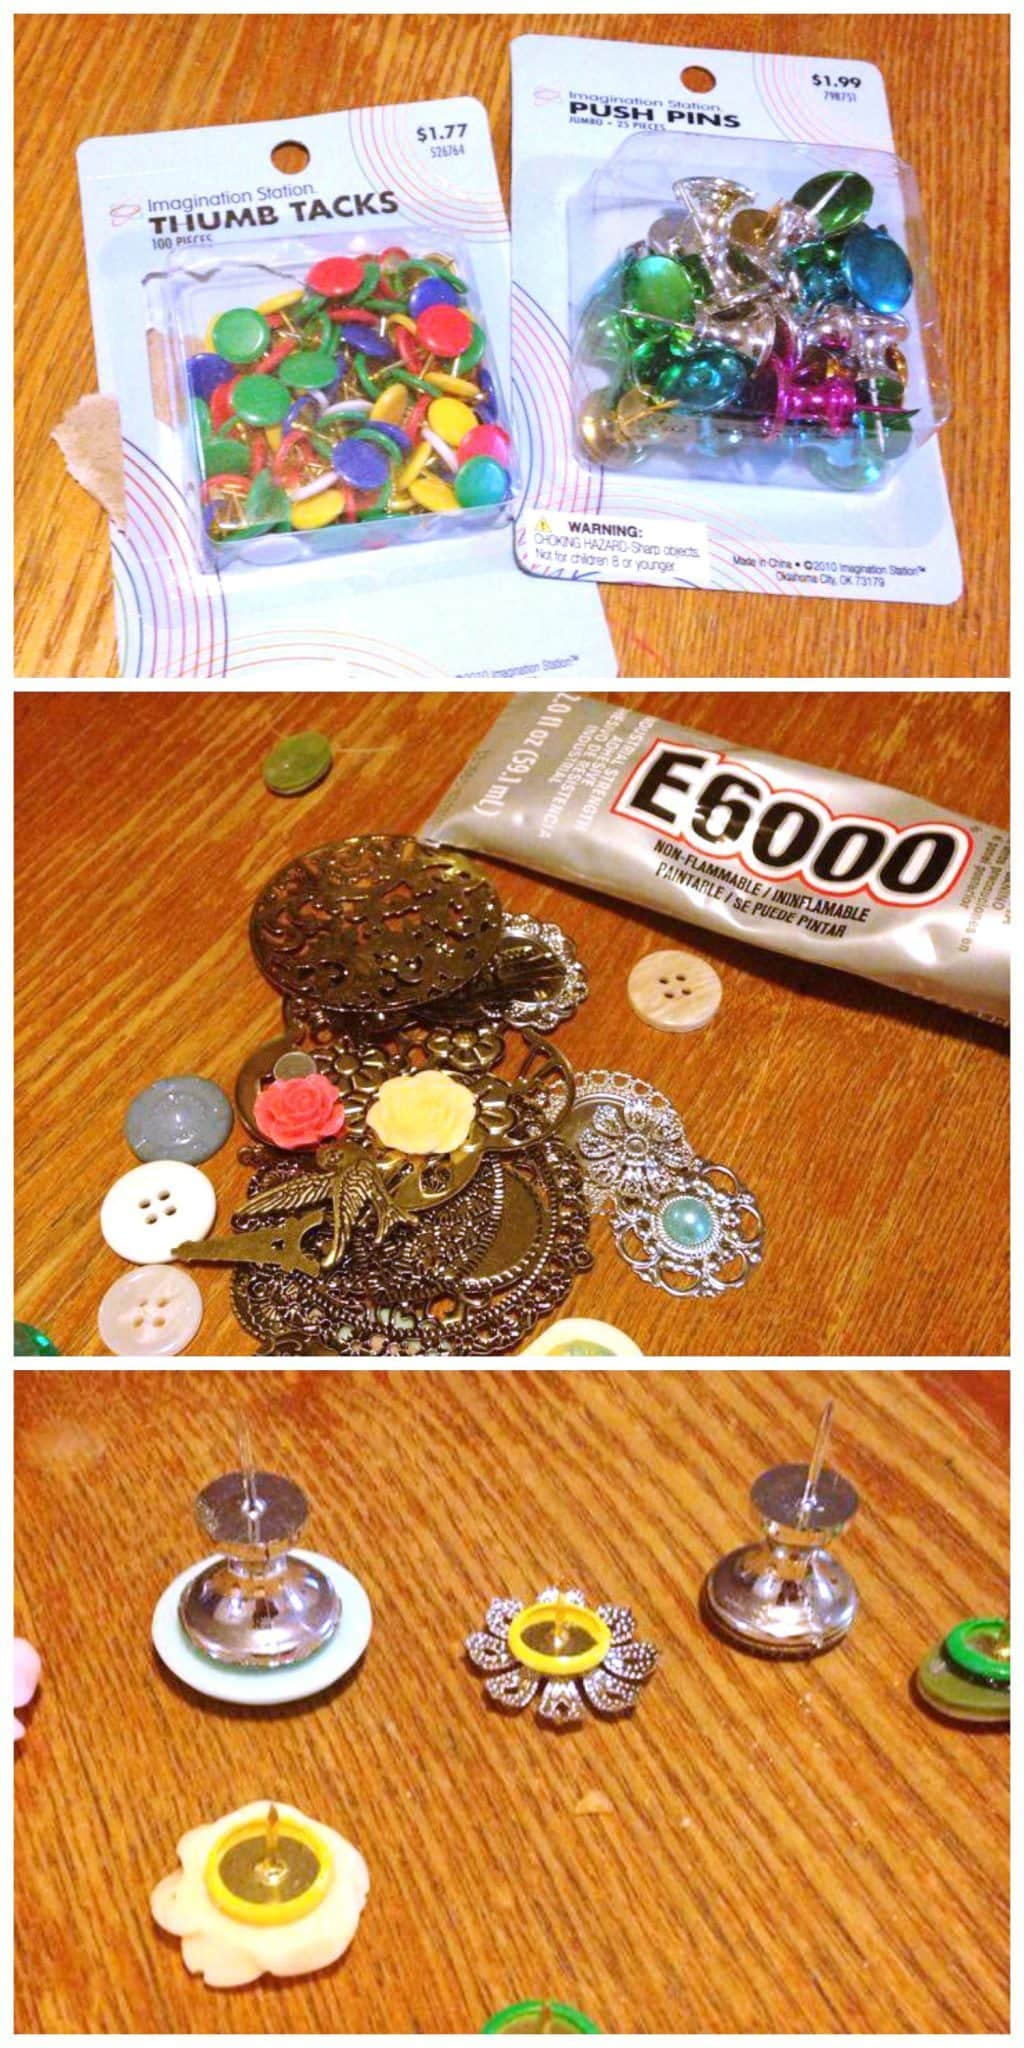 Used wine corks for crafts - Cork Crafts Are A Great Way To Upcycle Used Wine Corks You Can Make This